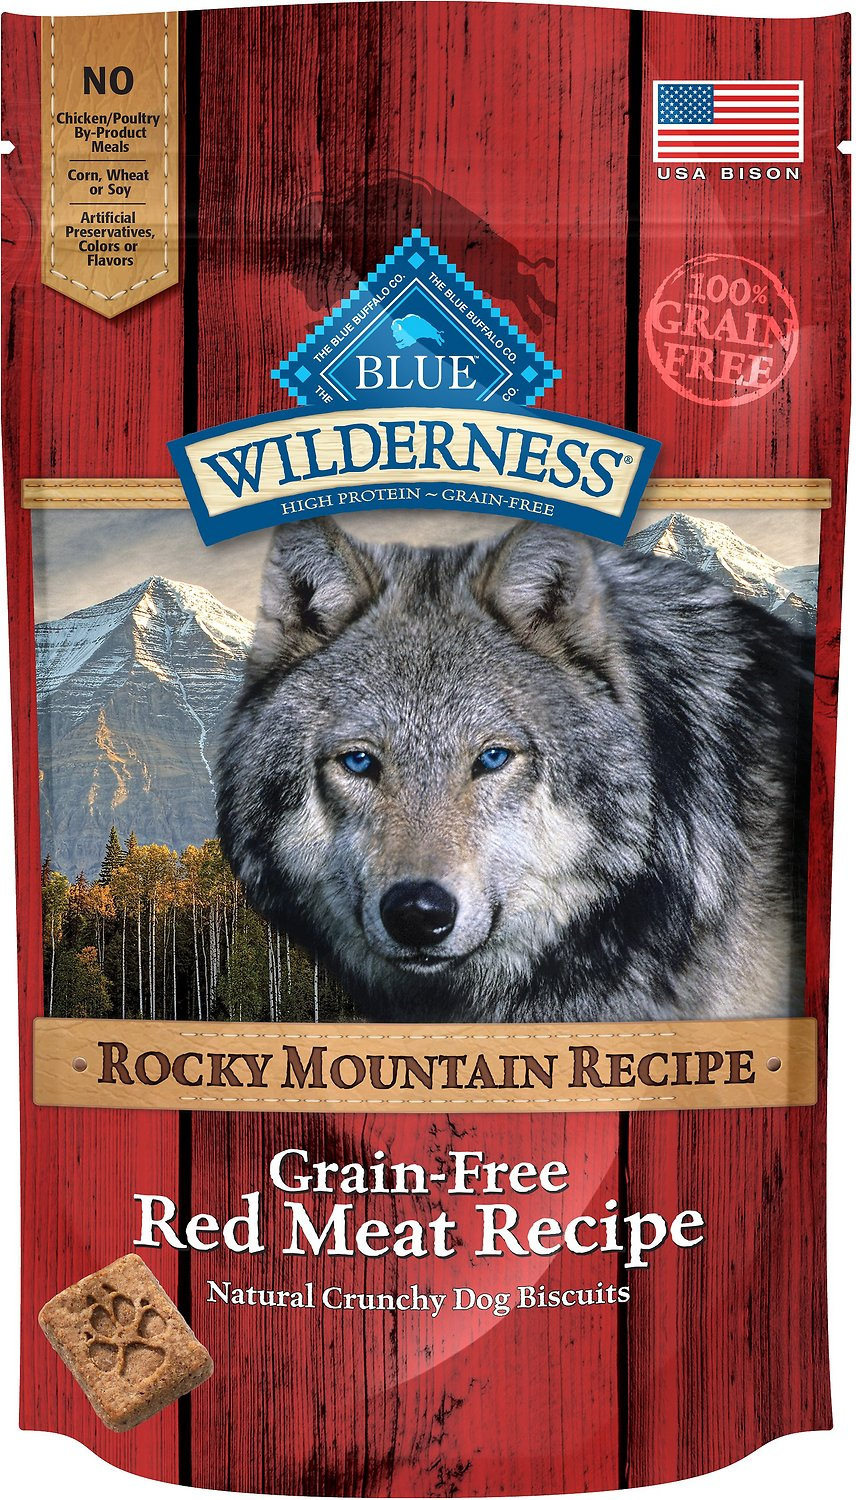 Blue Buffalo Wilderness Rocky Mountain Red Meat Recipe Biscuits Grain-Free Dog Treats, 8-oz bag